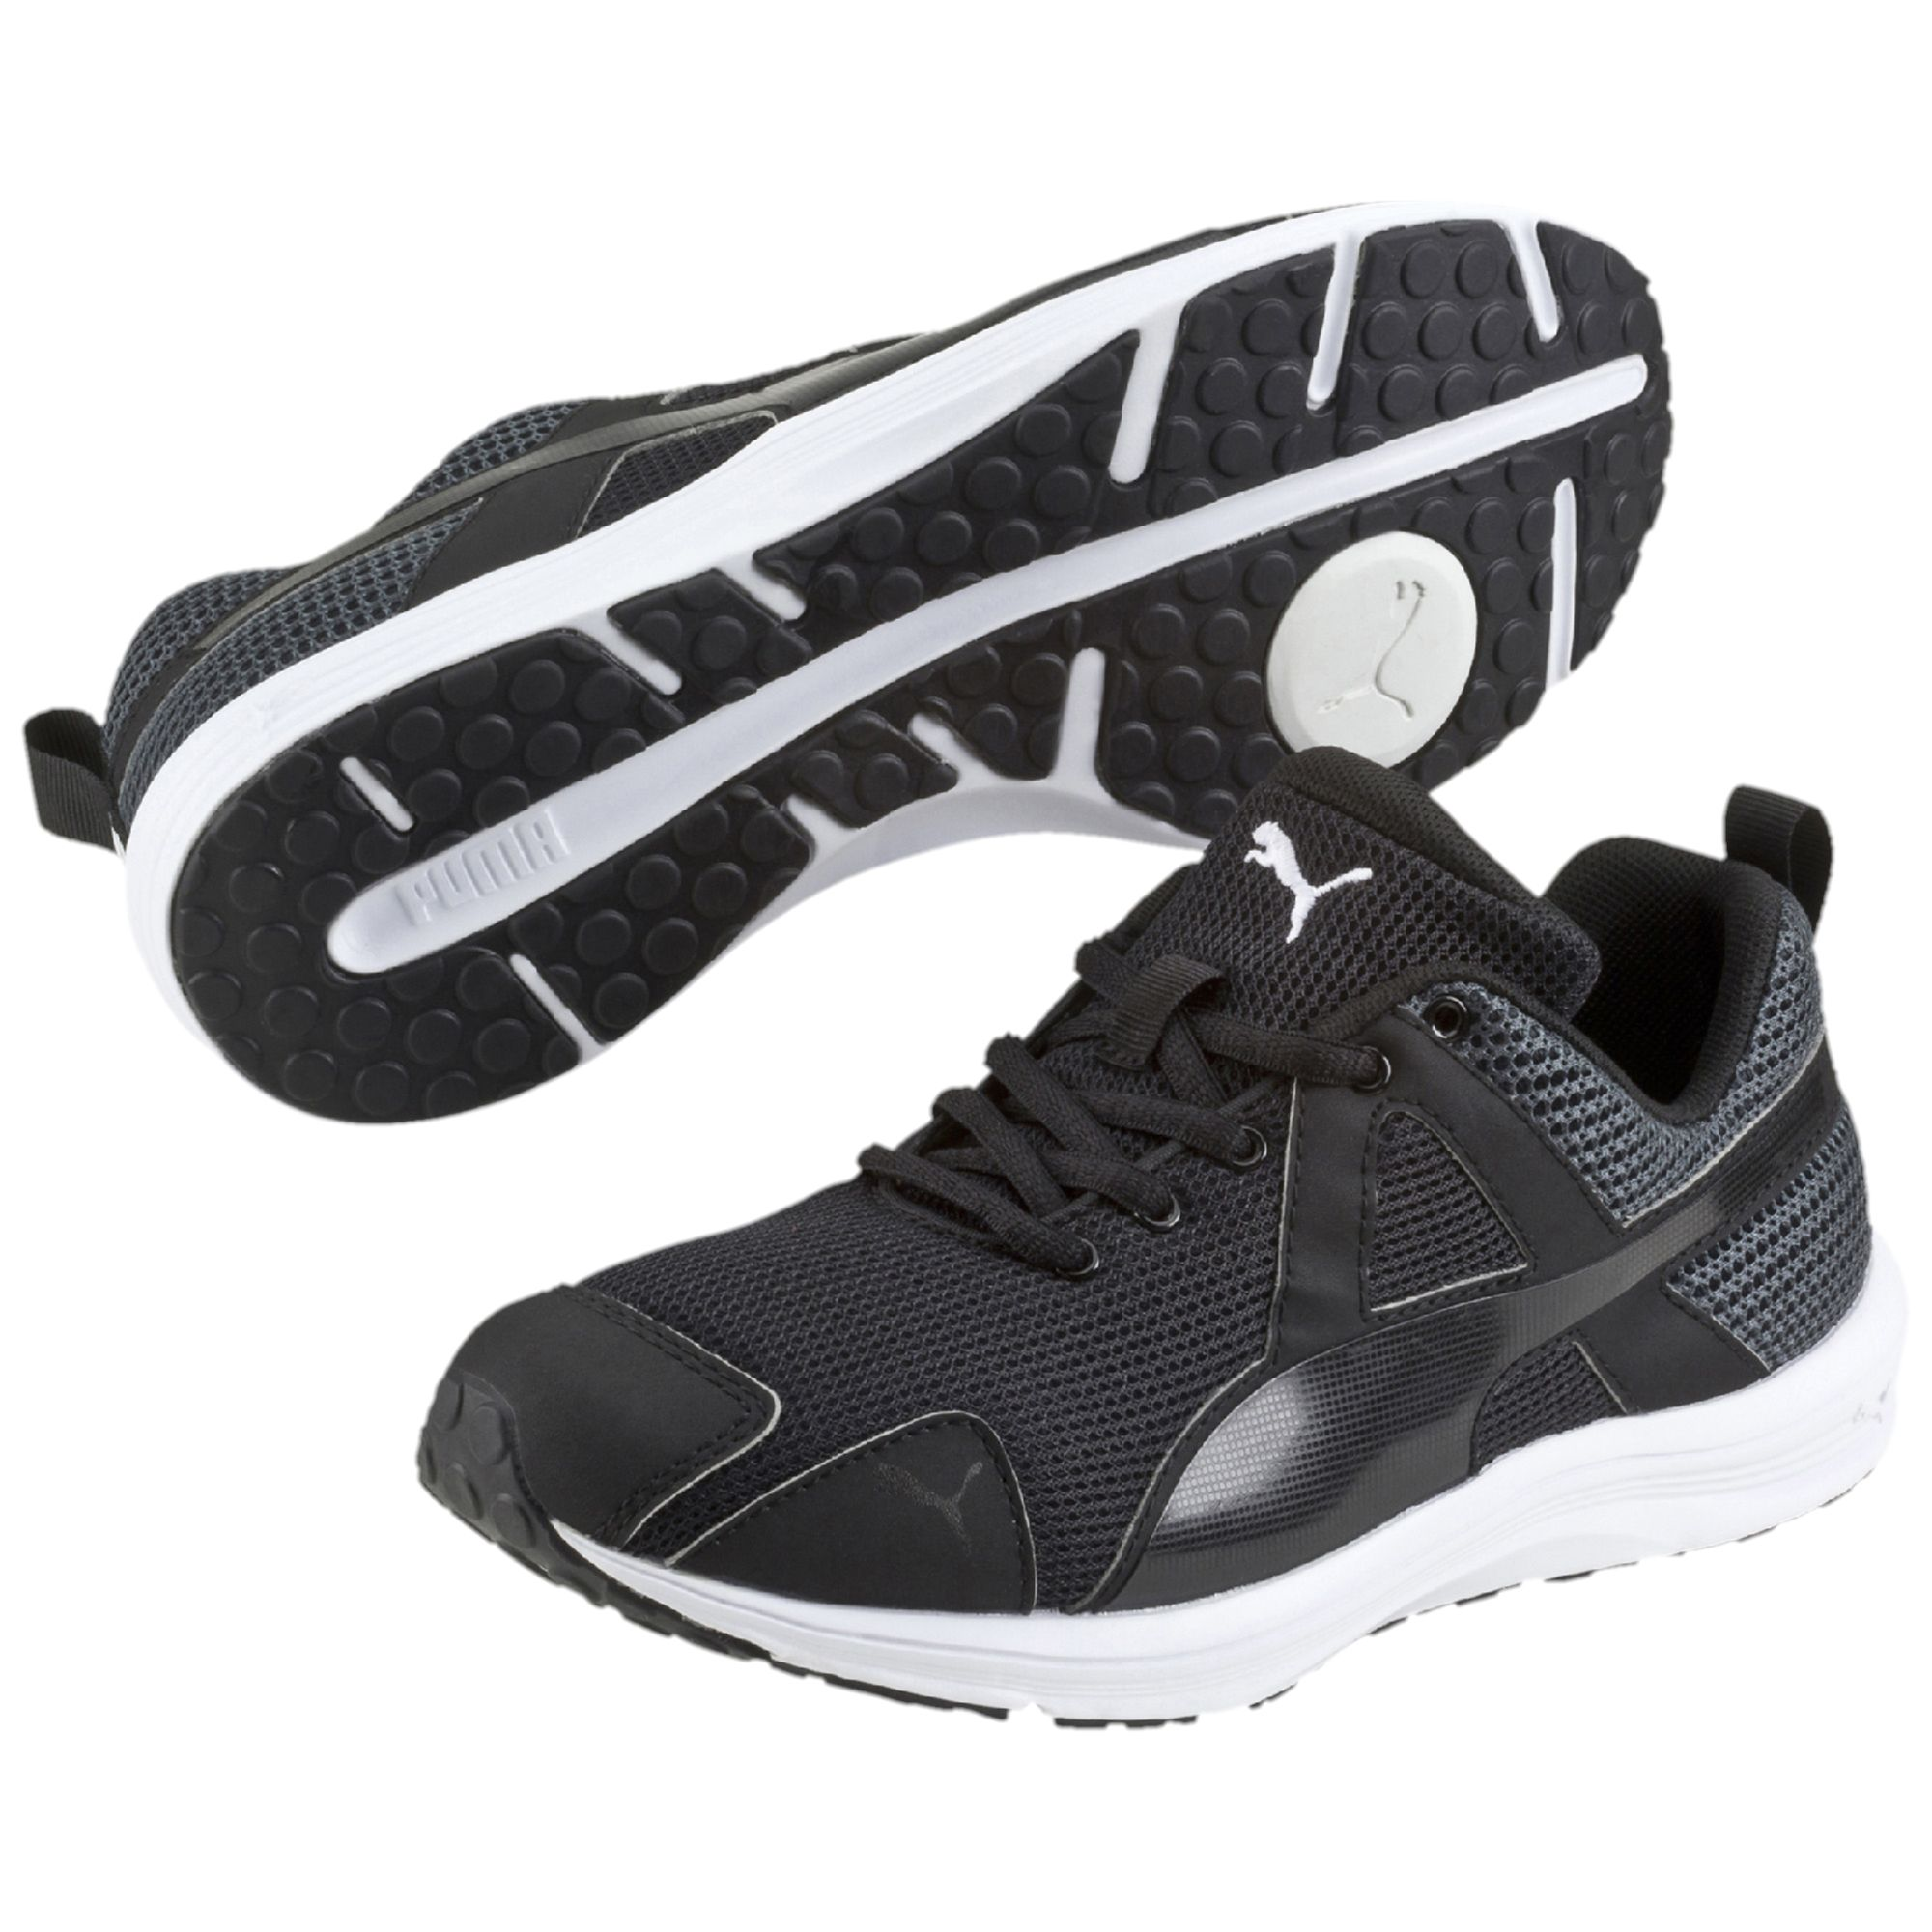 puma evader xt geo fitness schuhe schuhe training fitness. Black Bedroom Furniture Sets. Home Design Ideas